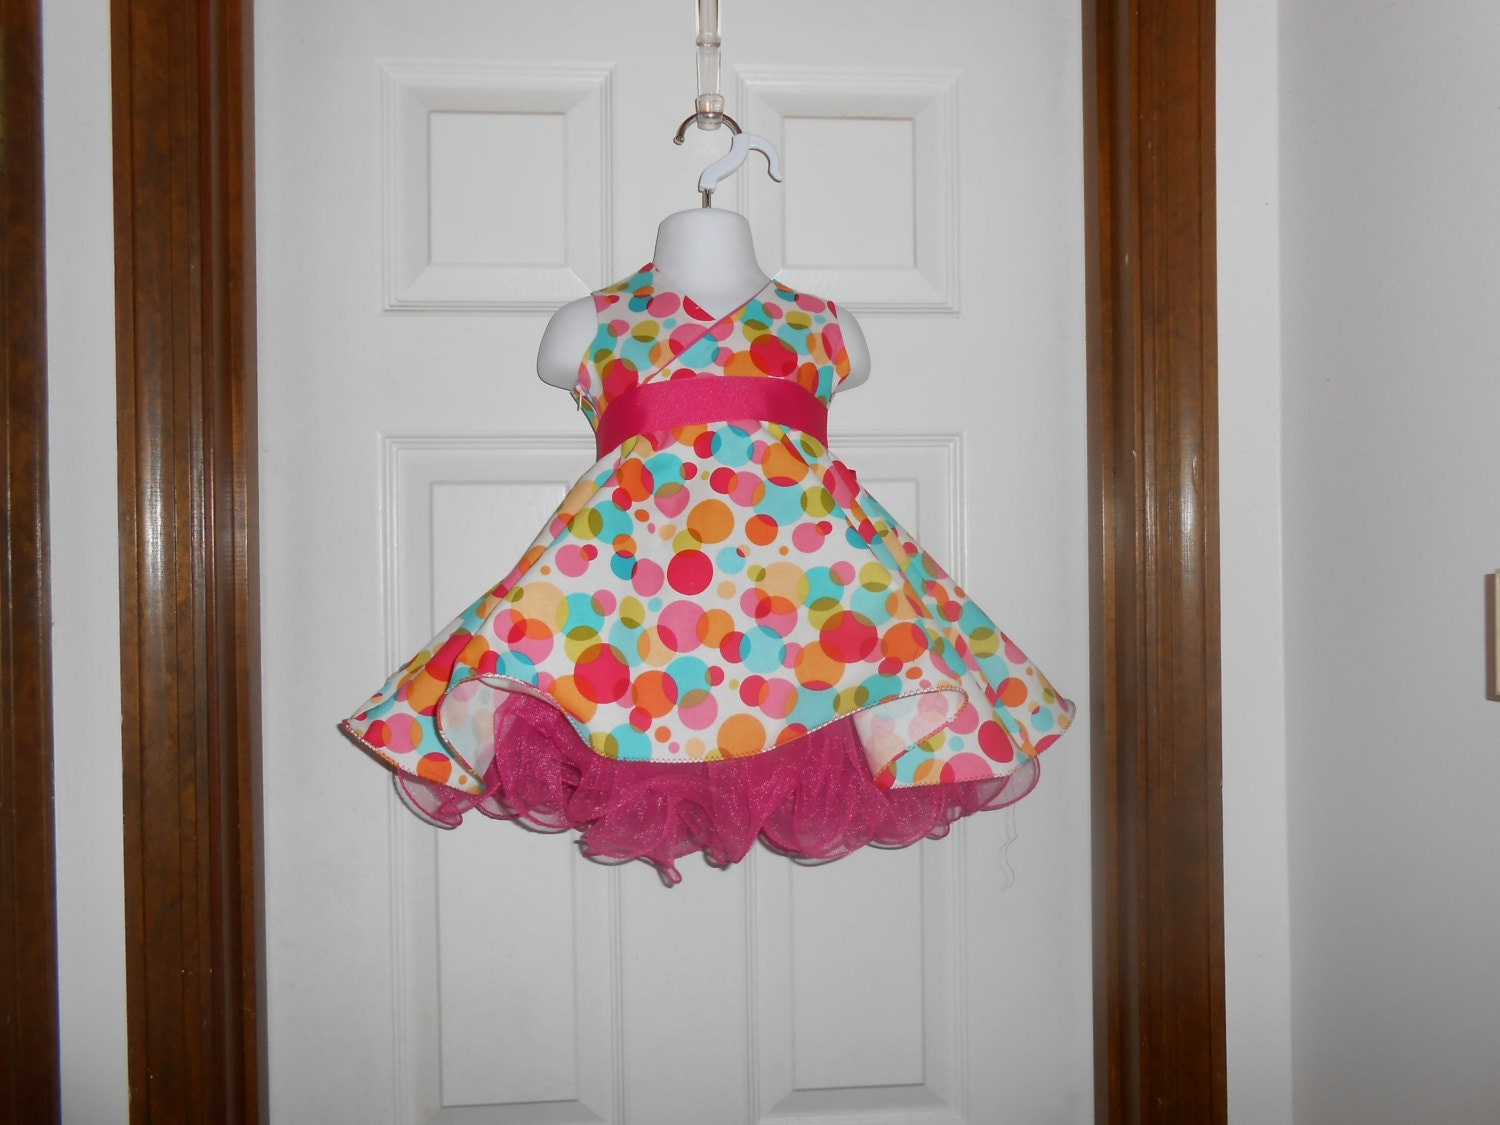 Pageant, Princess Bubble Dot Birthday  Dress 6m, 12-18mth, 2T, 3T, 4T, 5T - PatrioticPrincess2